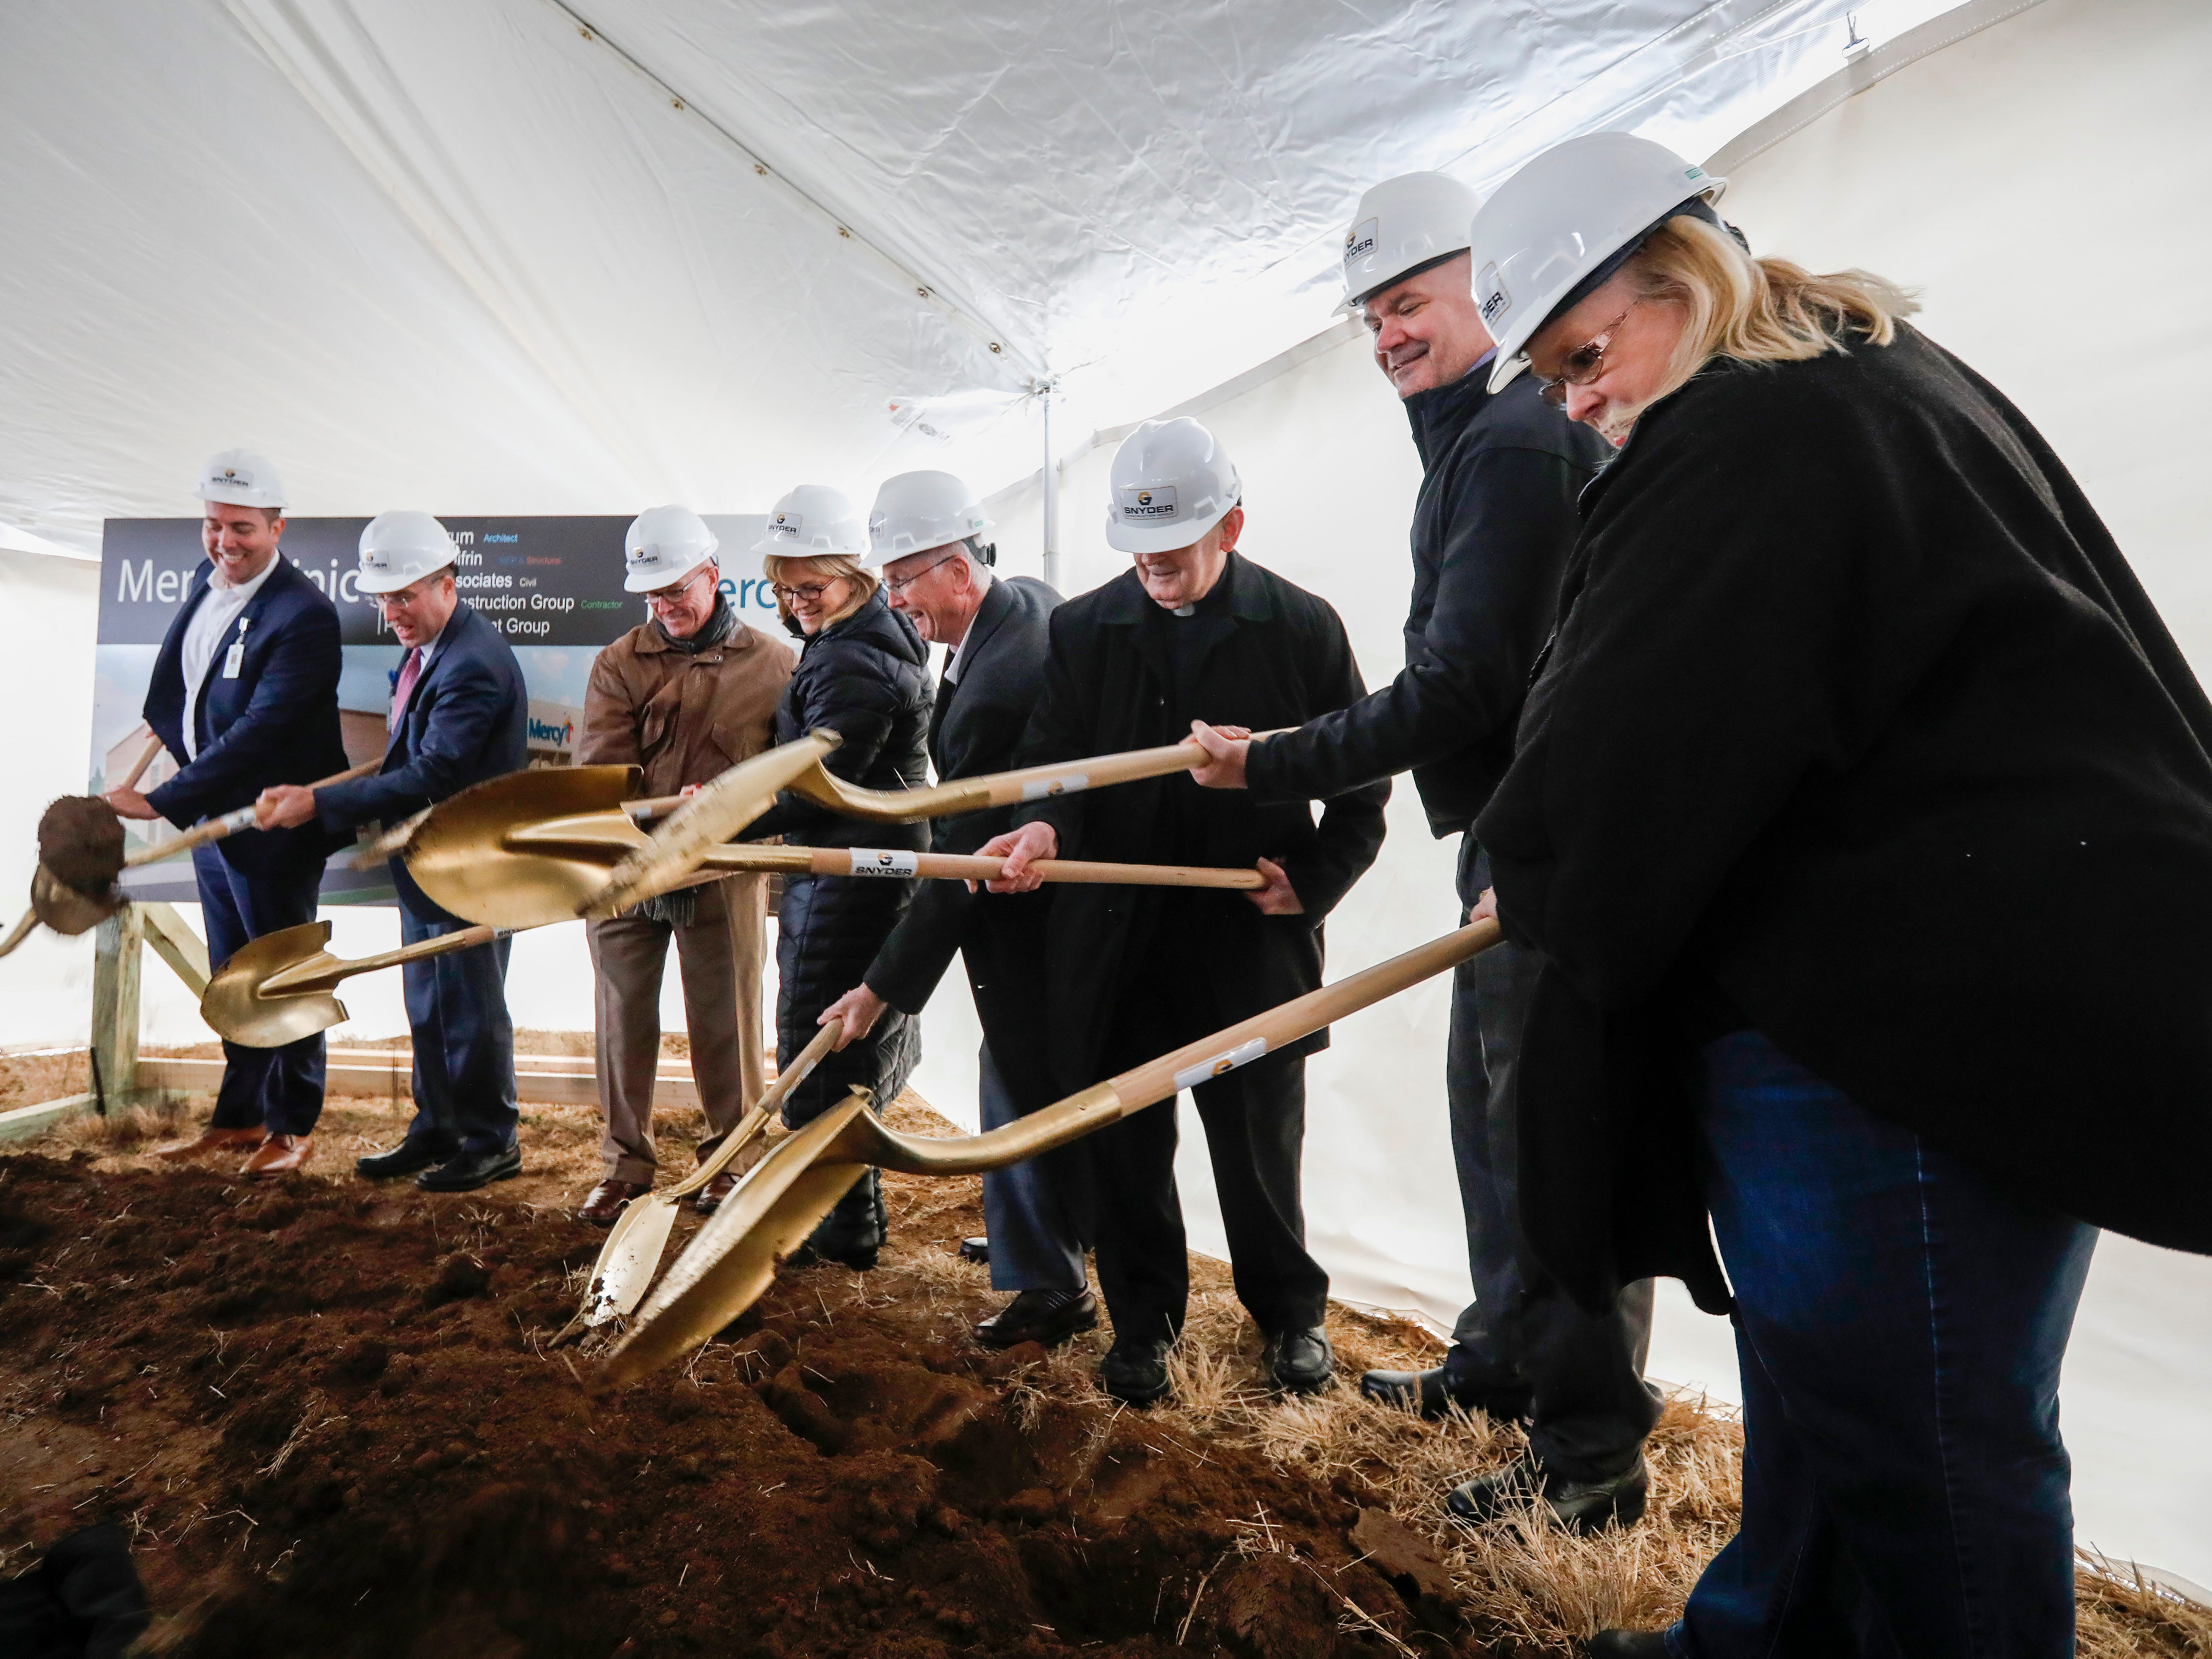 Mercy Hospital broke ground for the new Mercy clinic on Thursday, Dec. 20, 2018. The clinic will be located at Republic Road and Scenic Avenue.